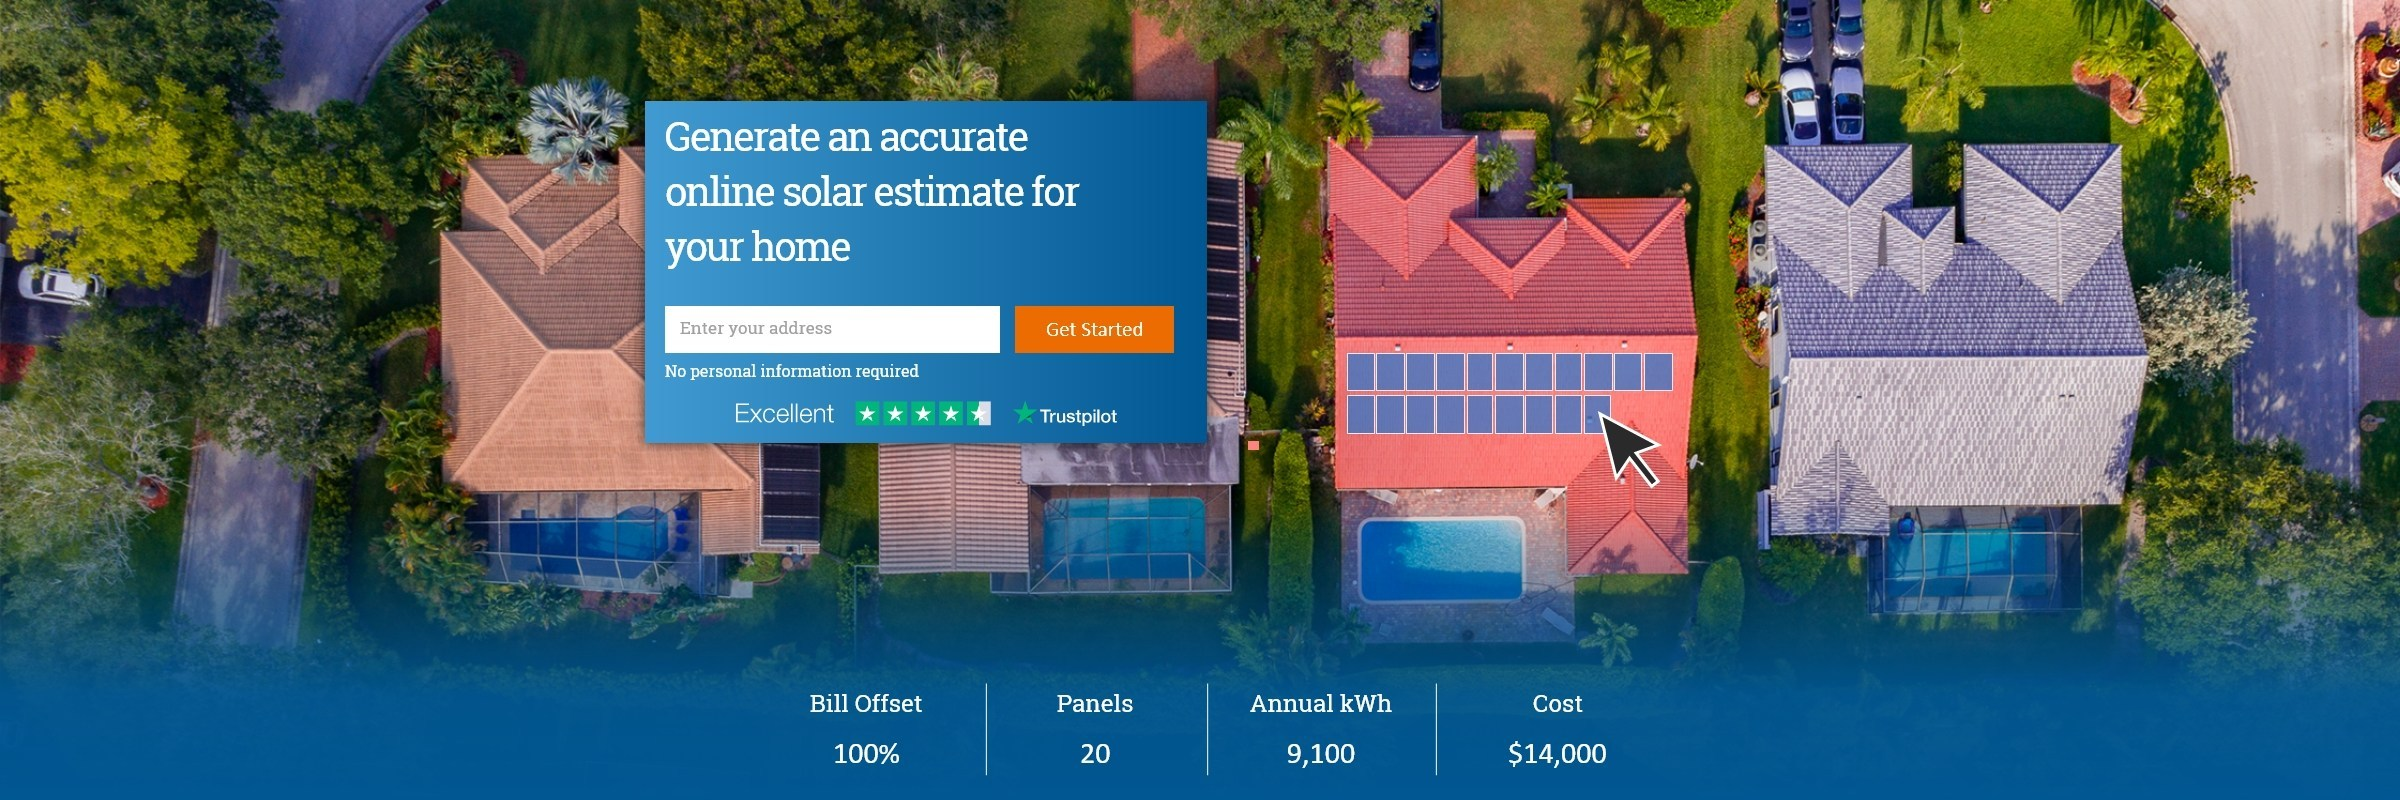 Solar-Estimate.org Releases First-of-its-Kind AI-Powered Solar Panel Layout Tool and Open Solar Calculator